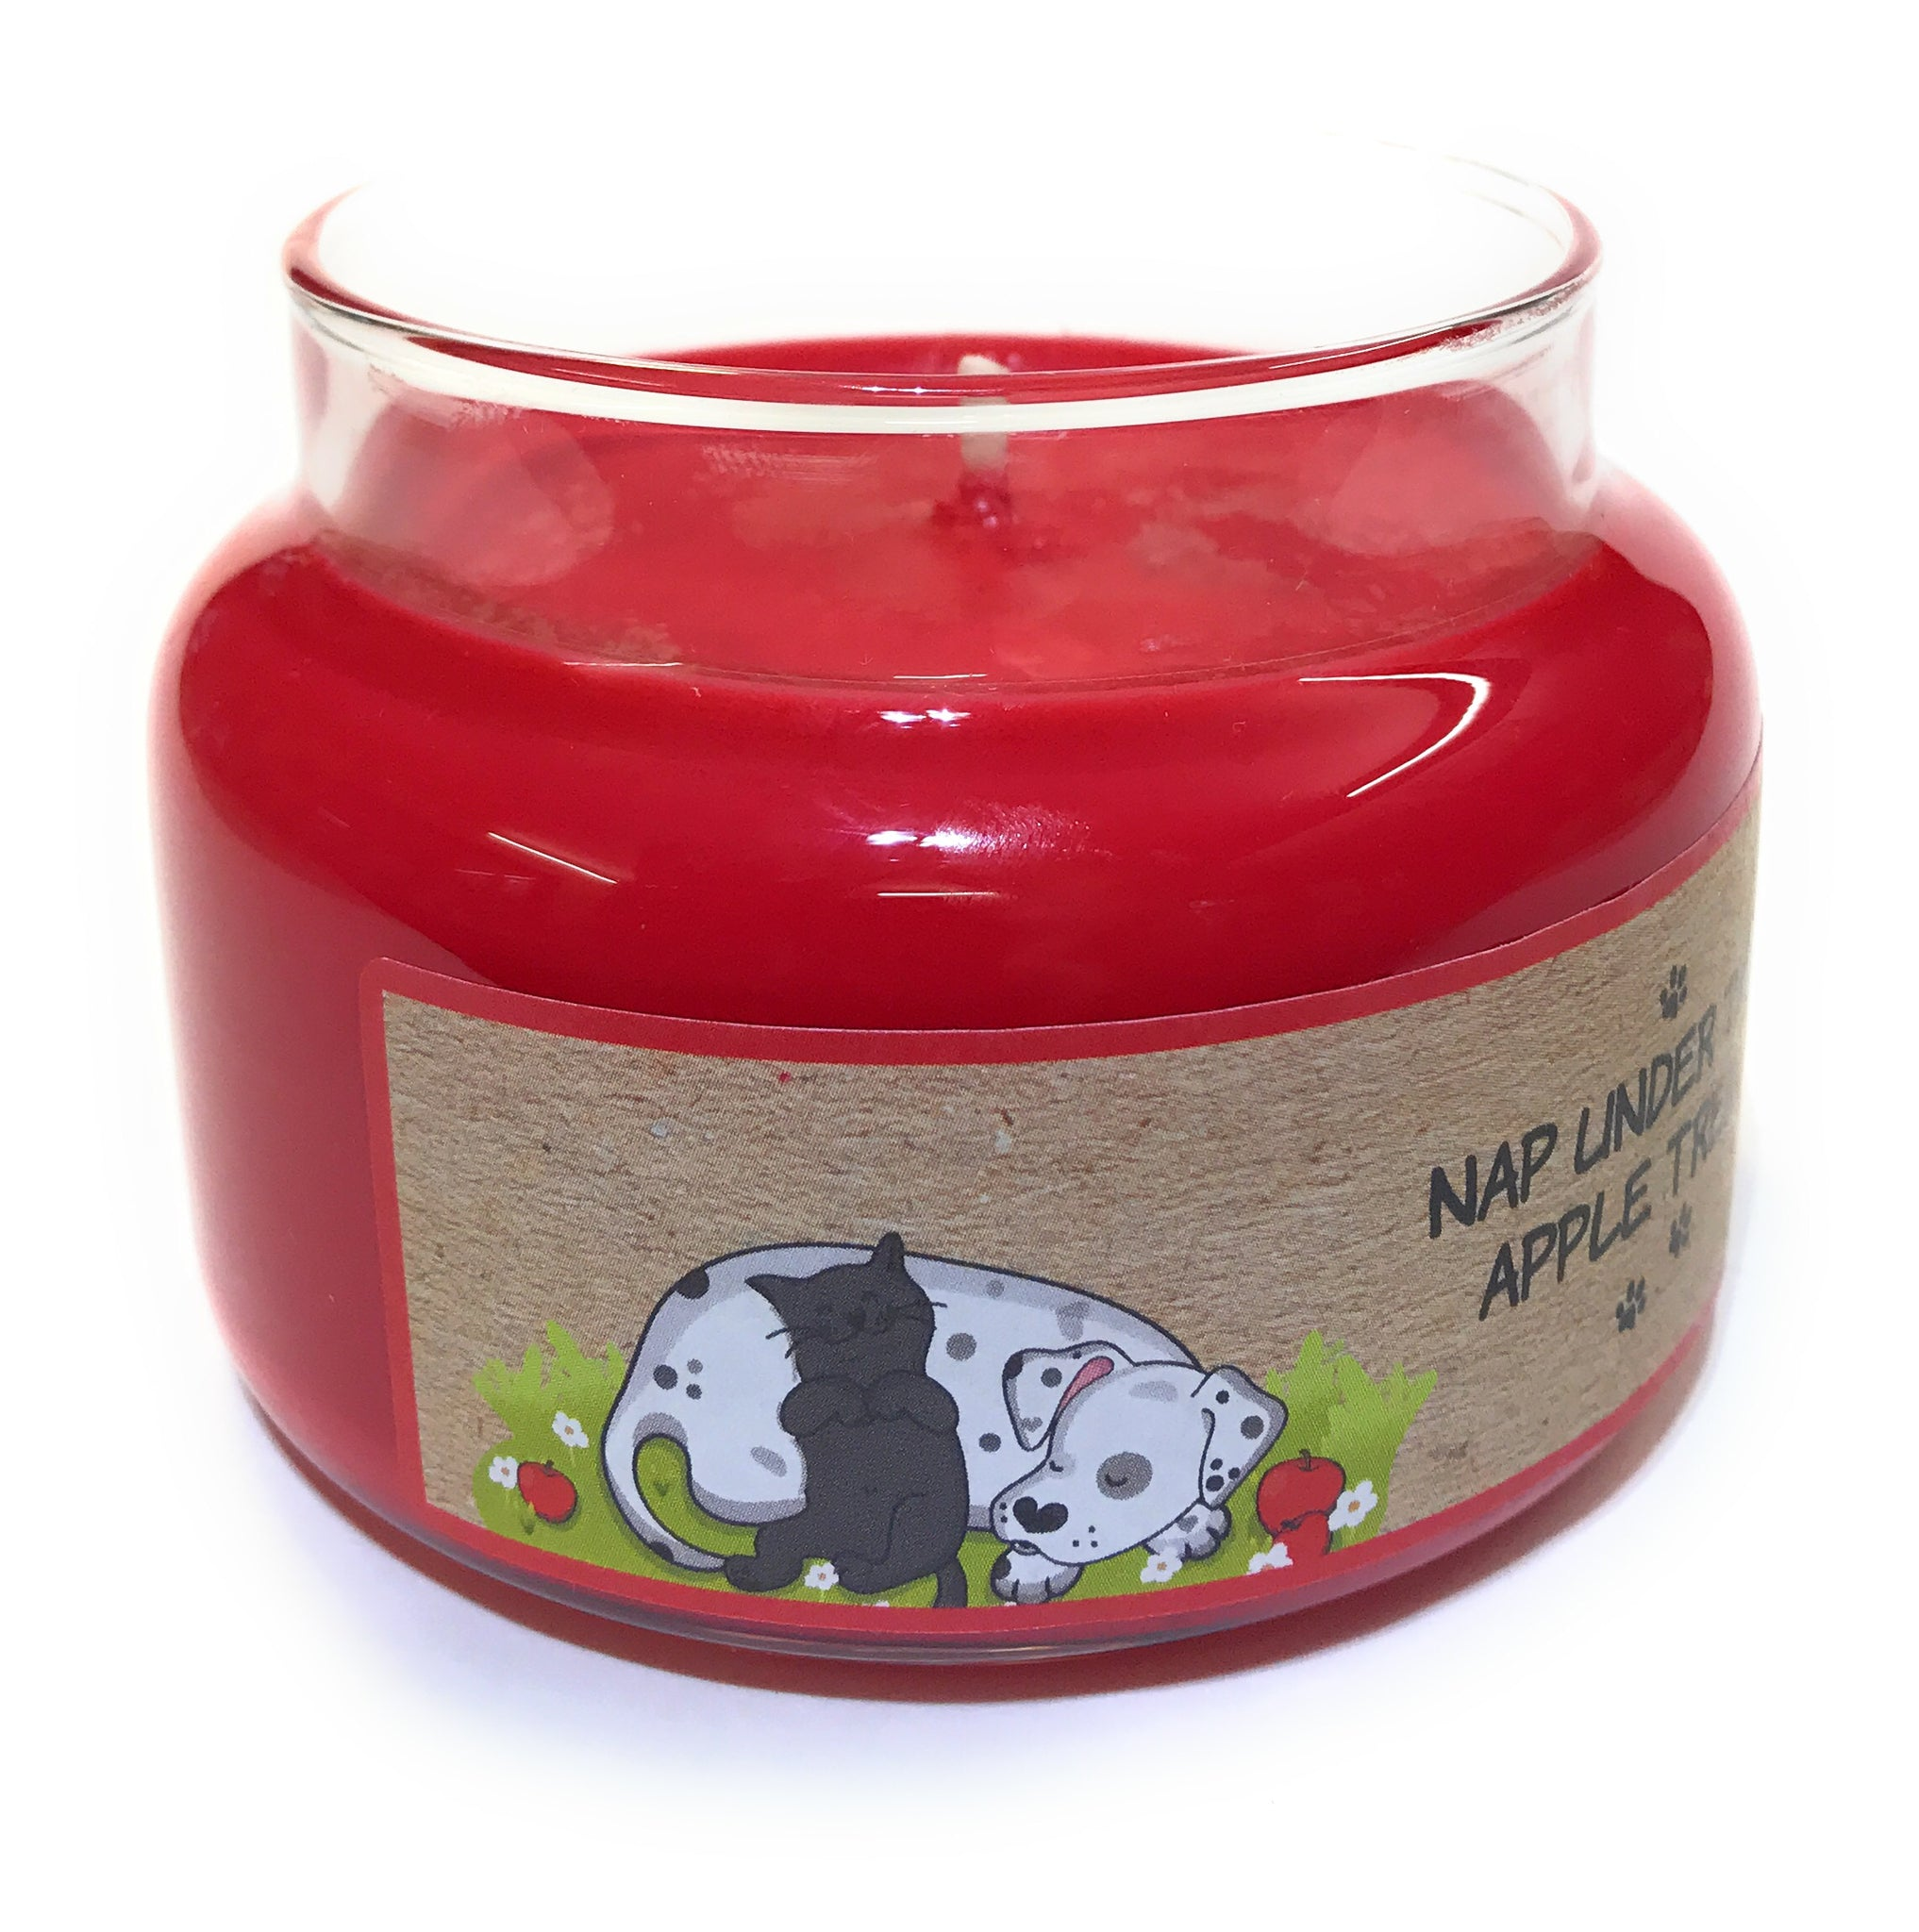 Nap Under the Apple Tree 100% Soy Wax Triple Scented Candle